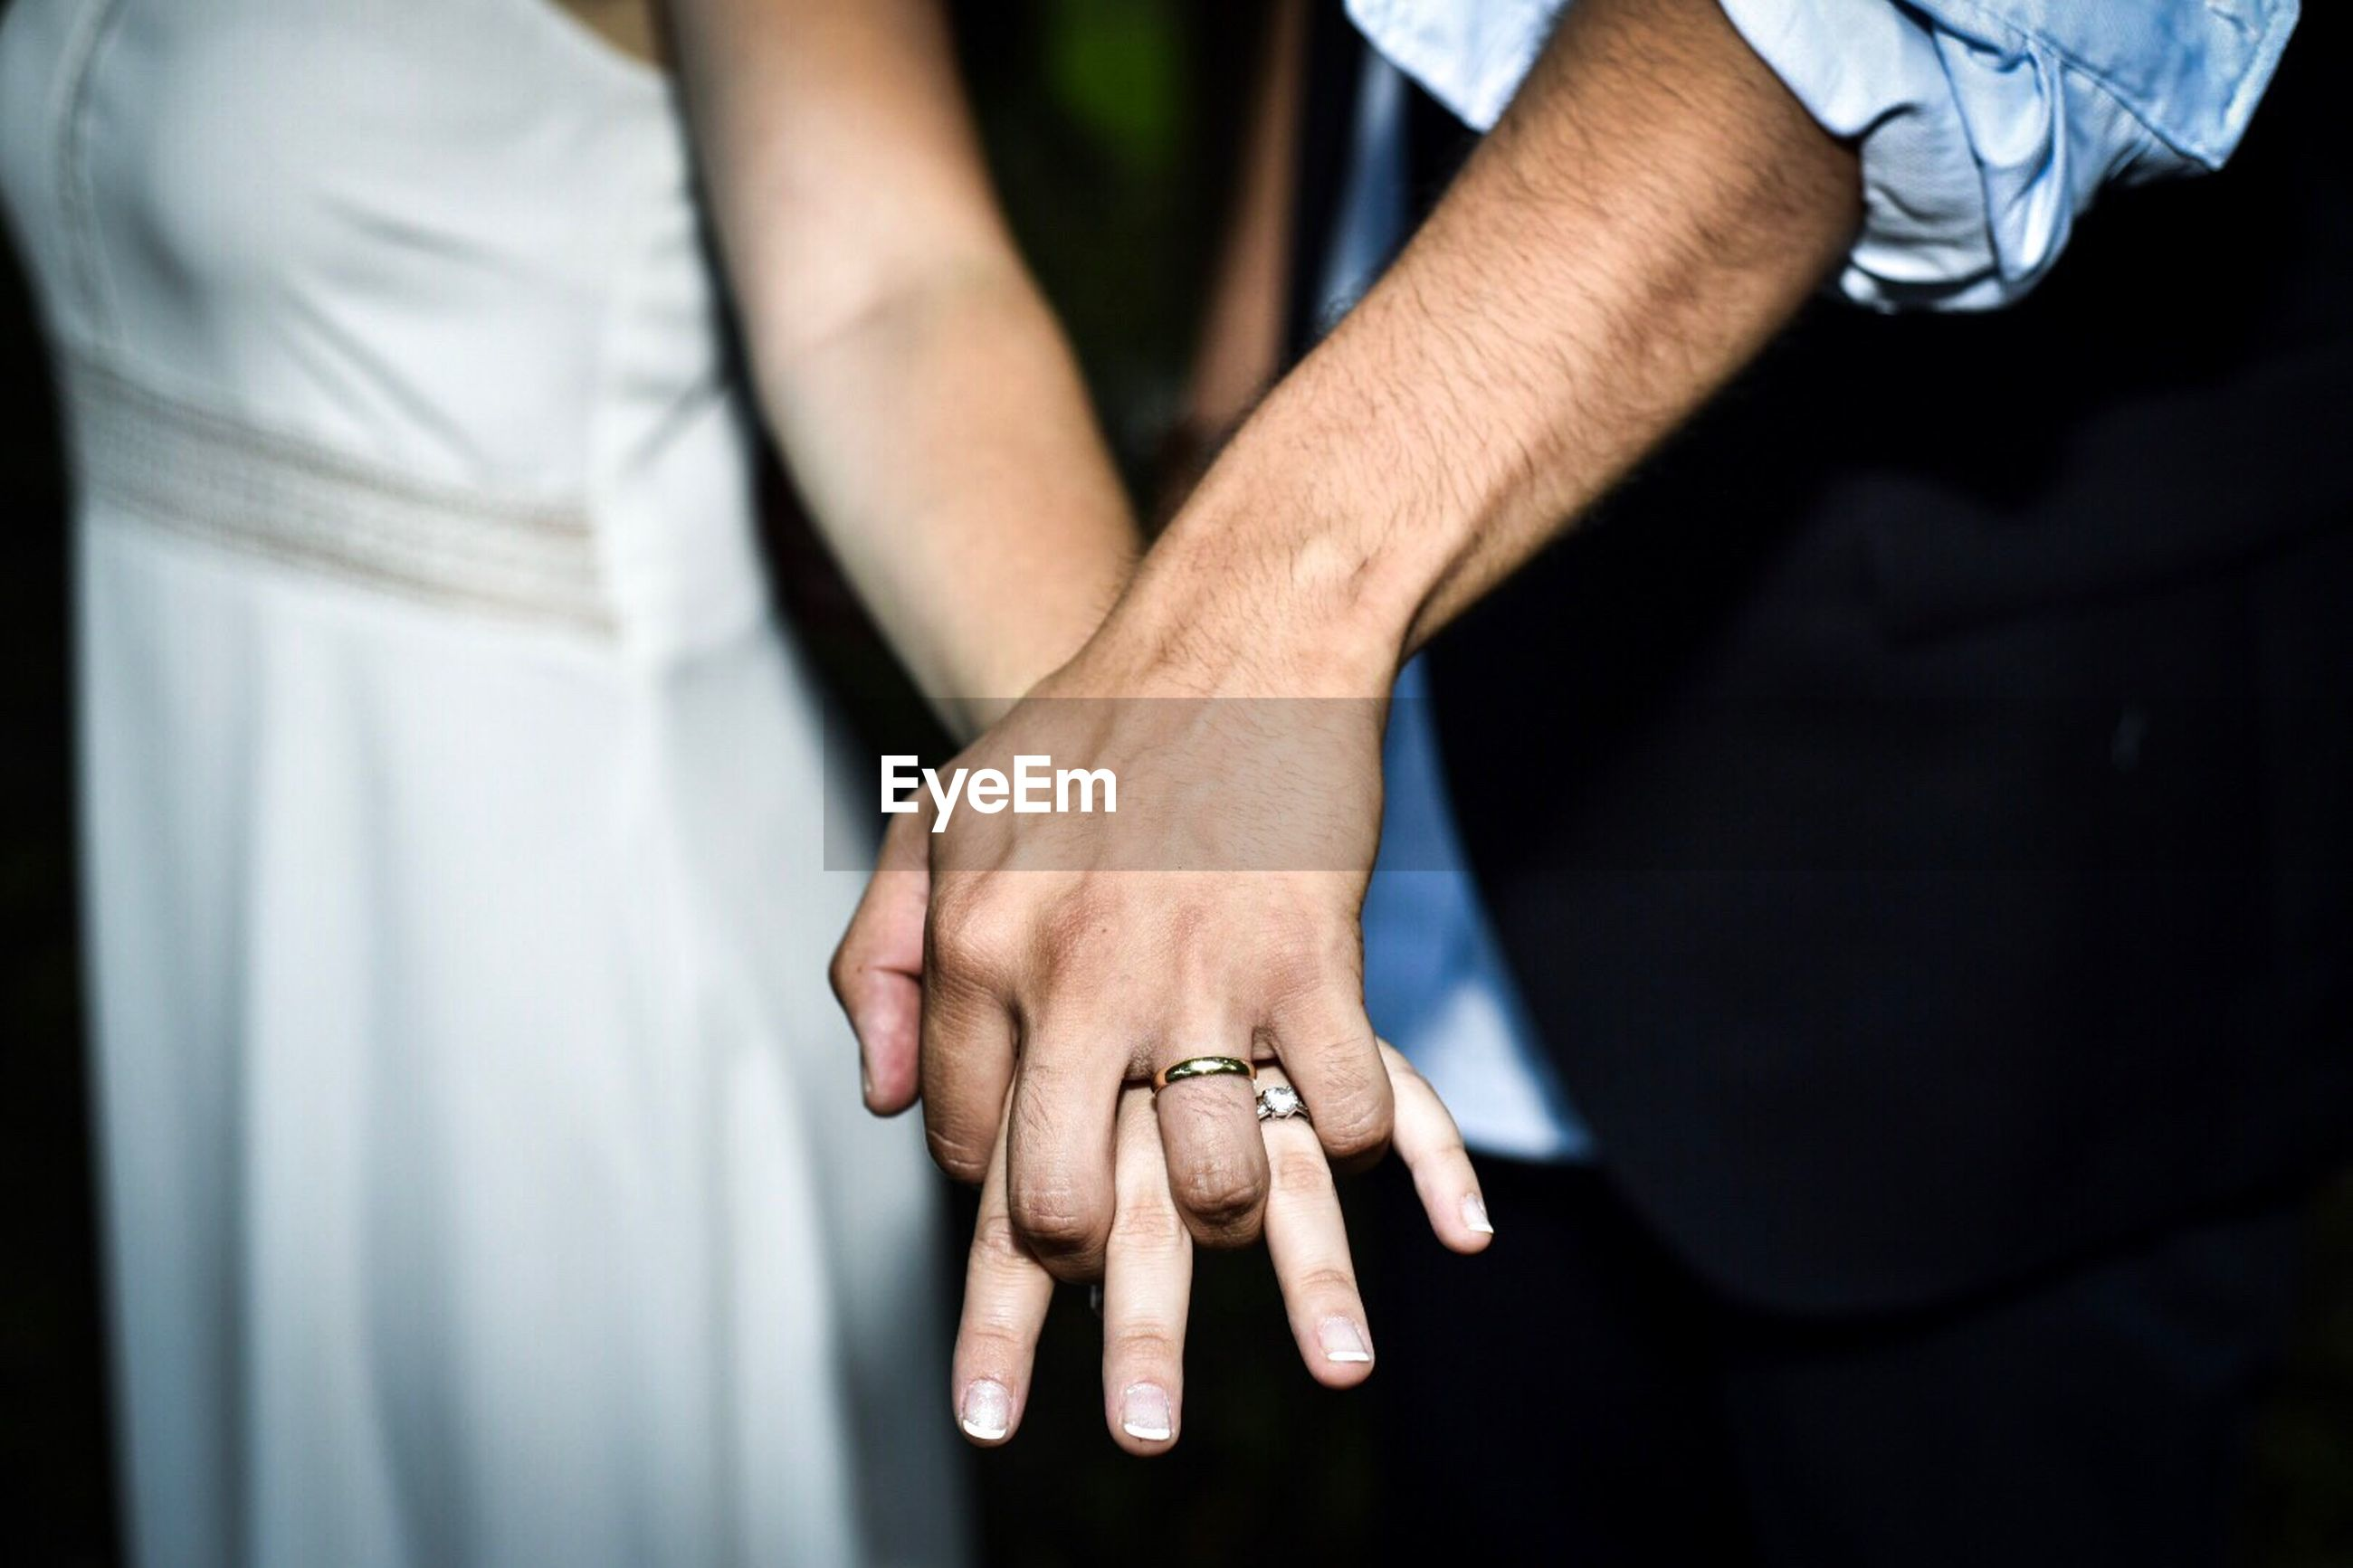 Close-up of couple wearing rings while holding hands